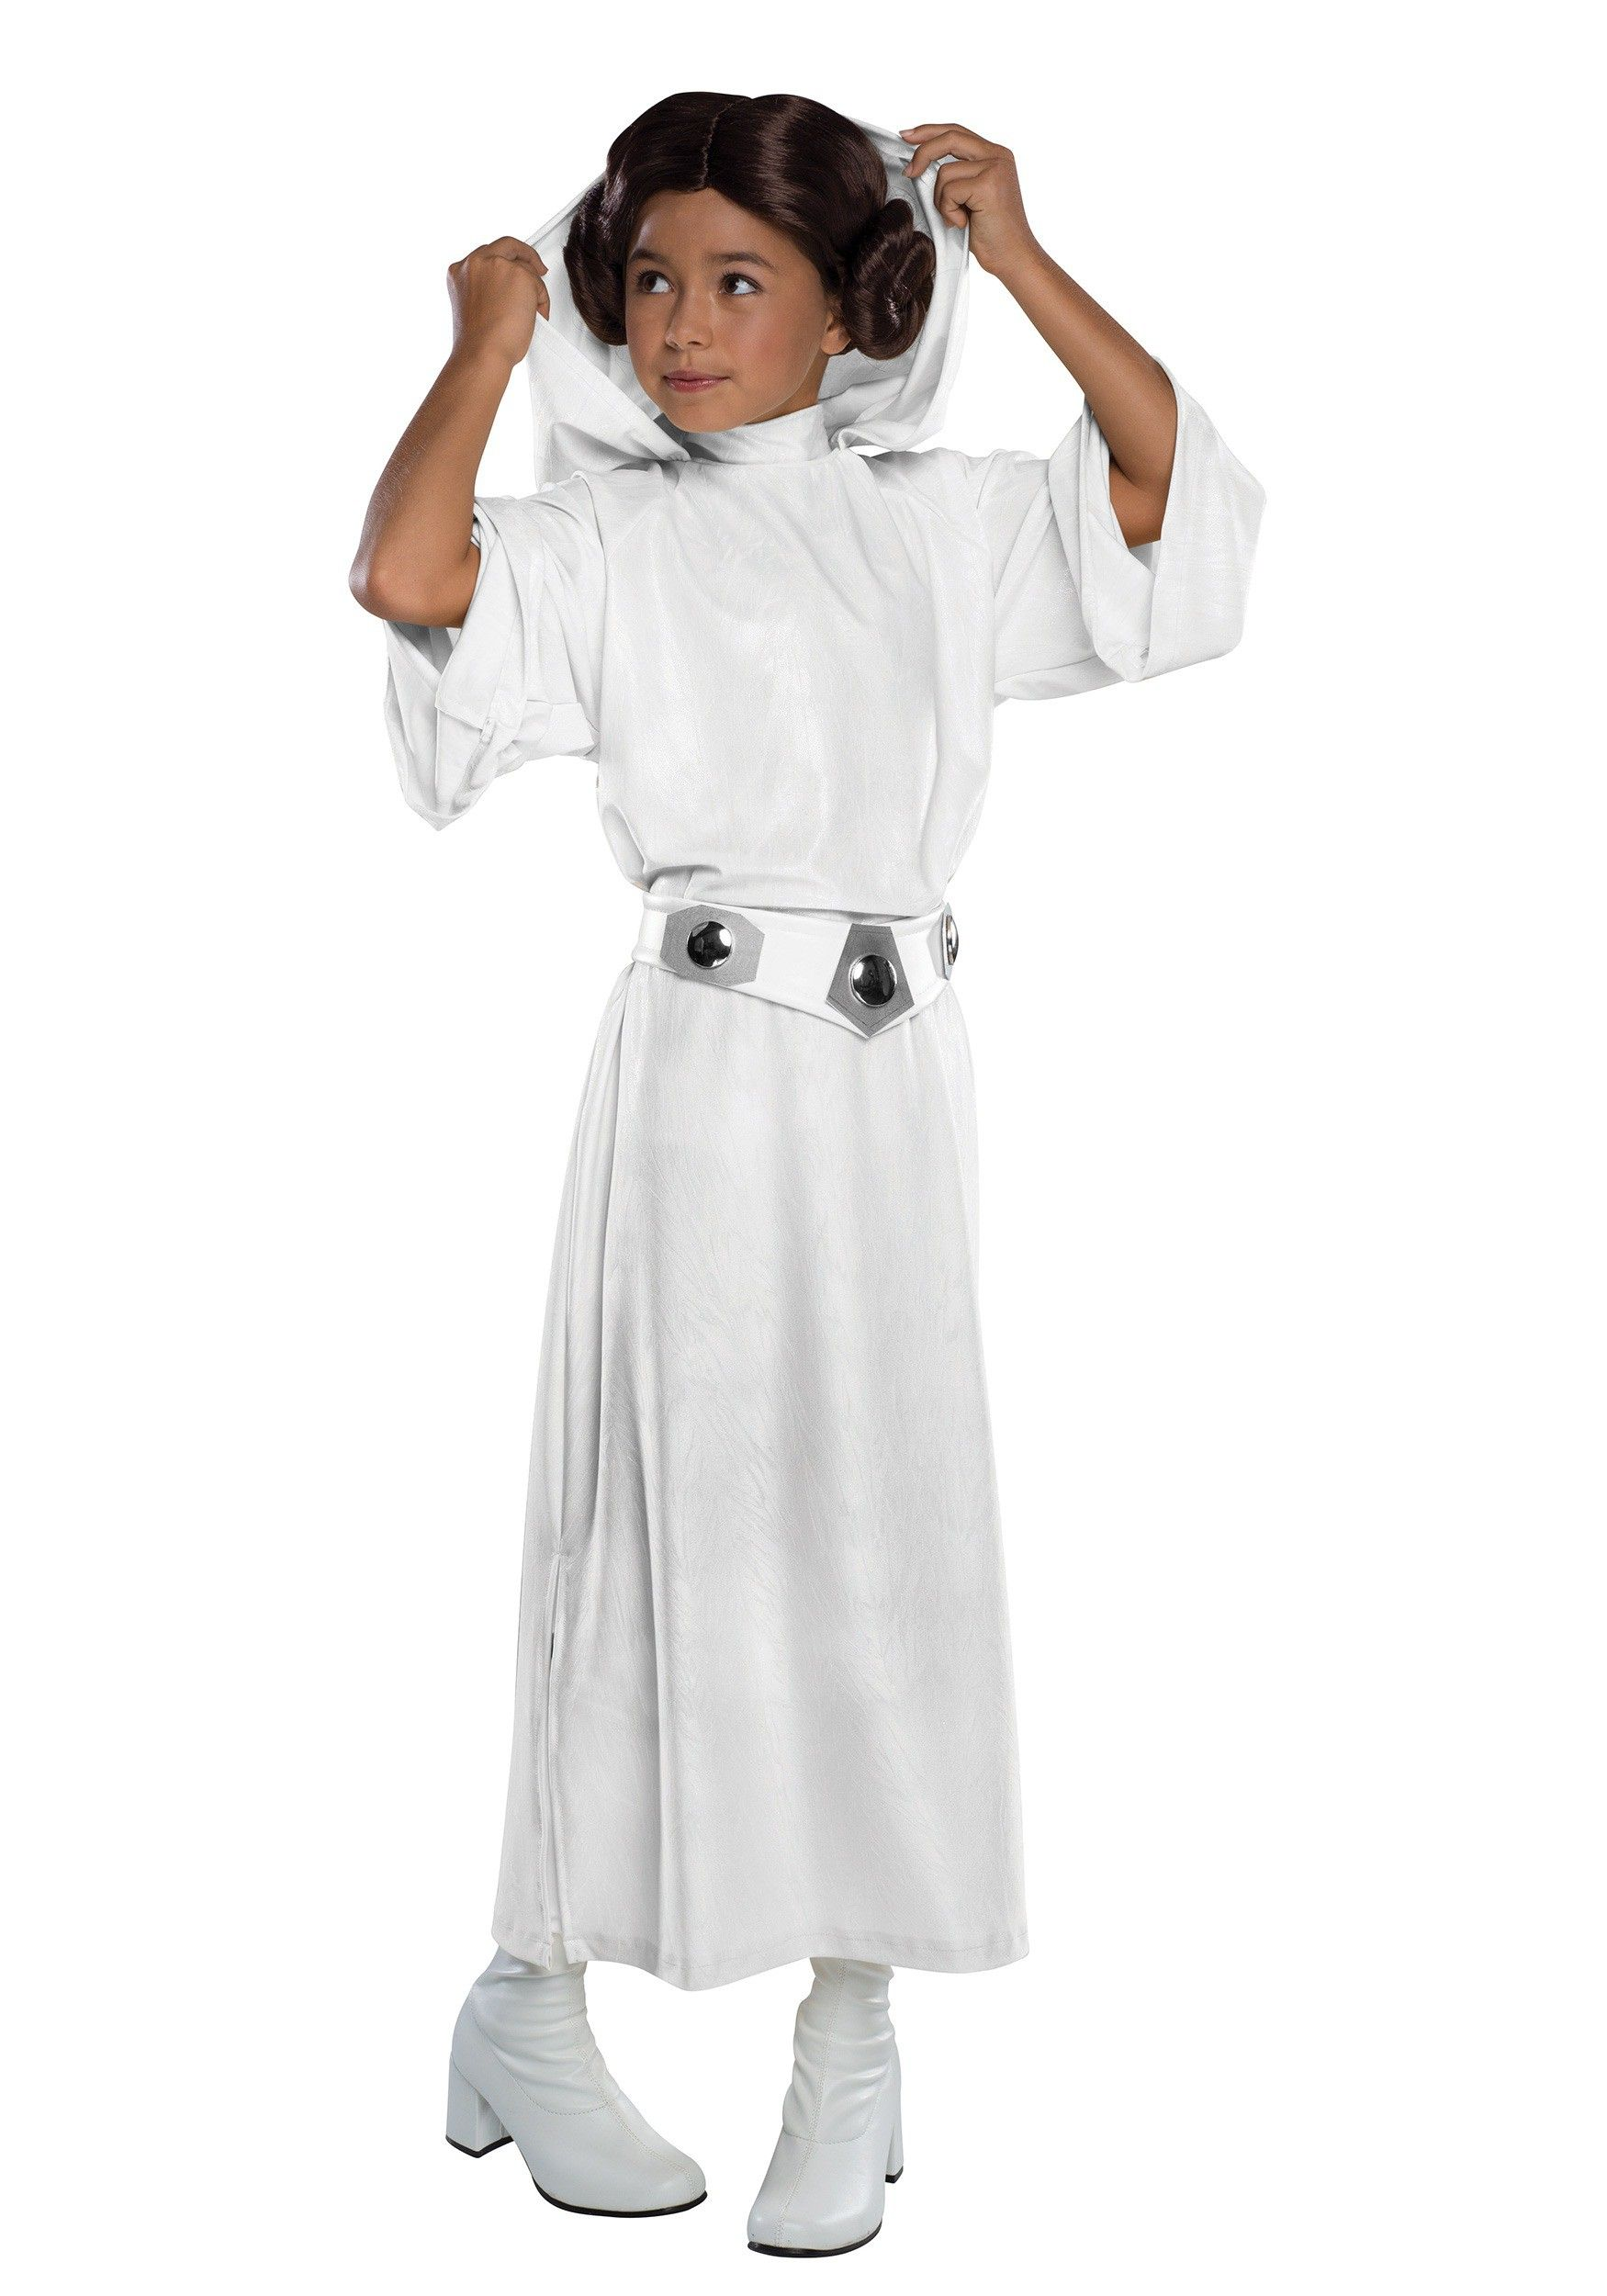 Girls Child STAR WARS Deluxe Princess Leia Costume